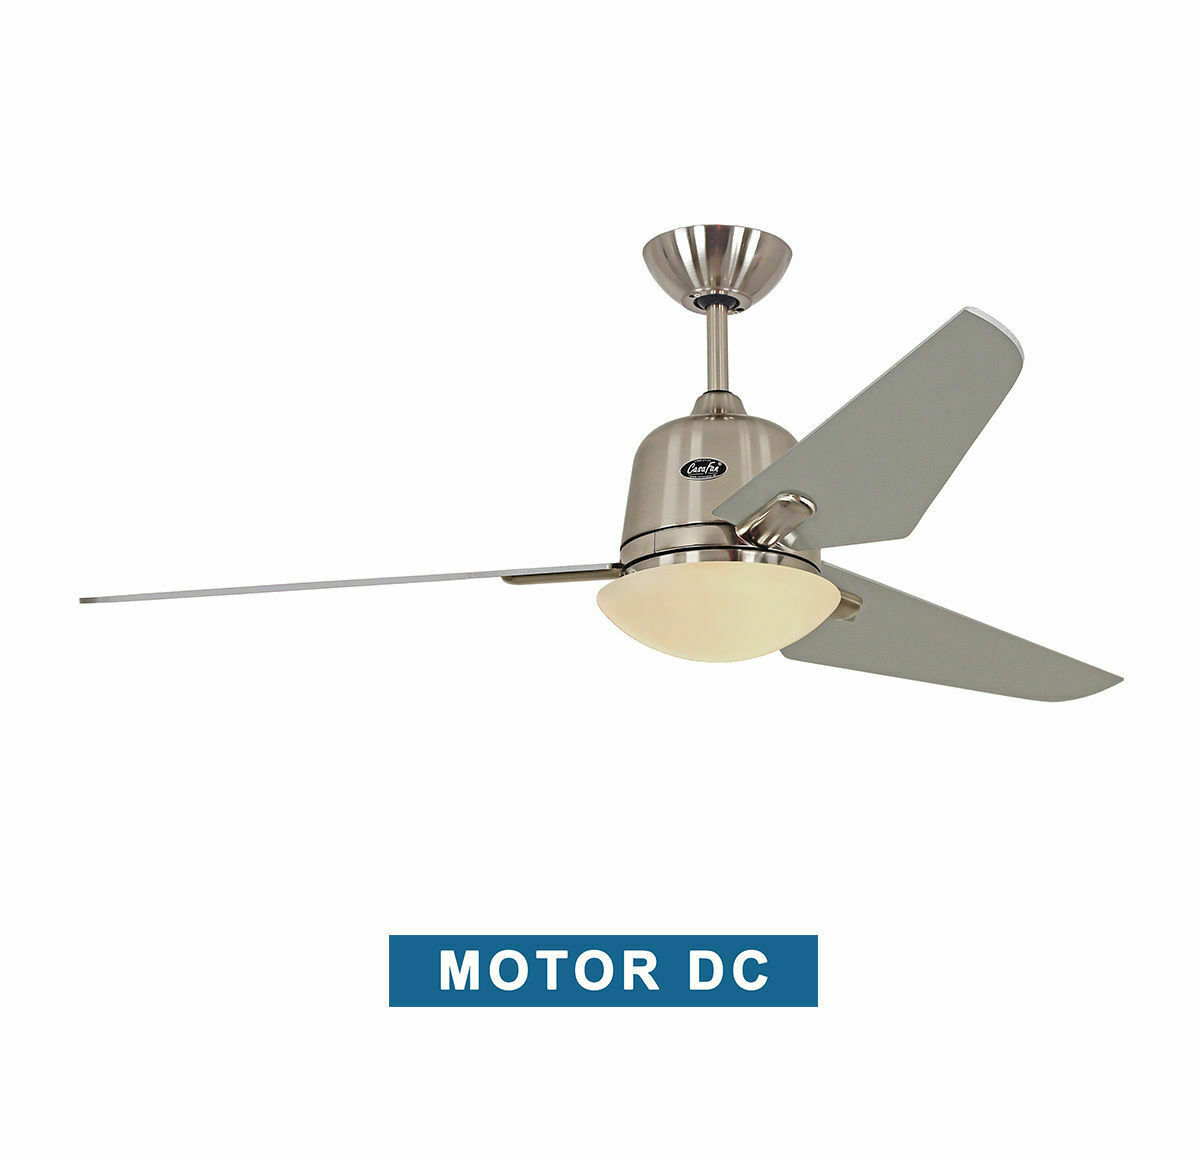 Ceiling fan with light CasaFan 513285 ECO AVIATOS silver gray / chrome